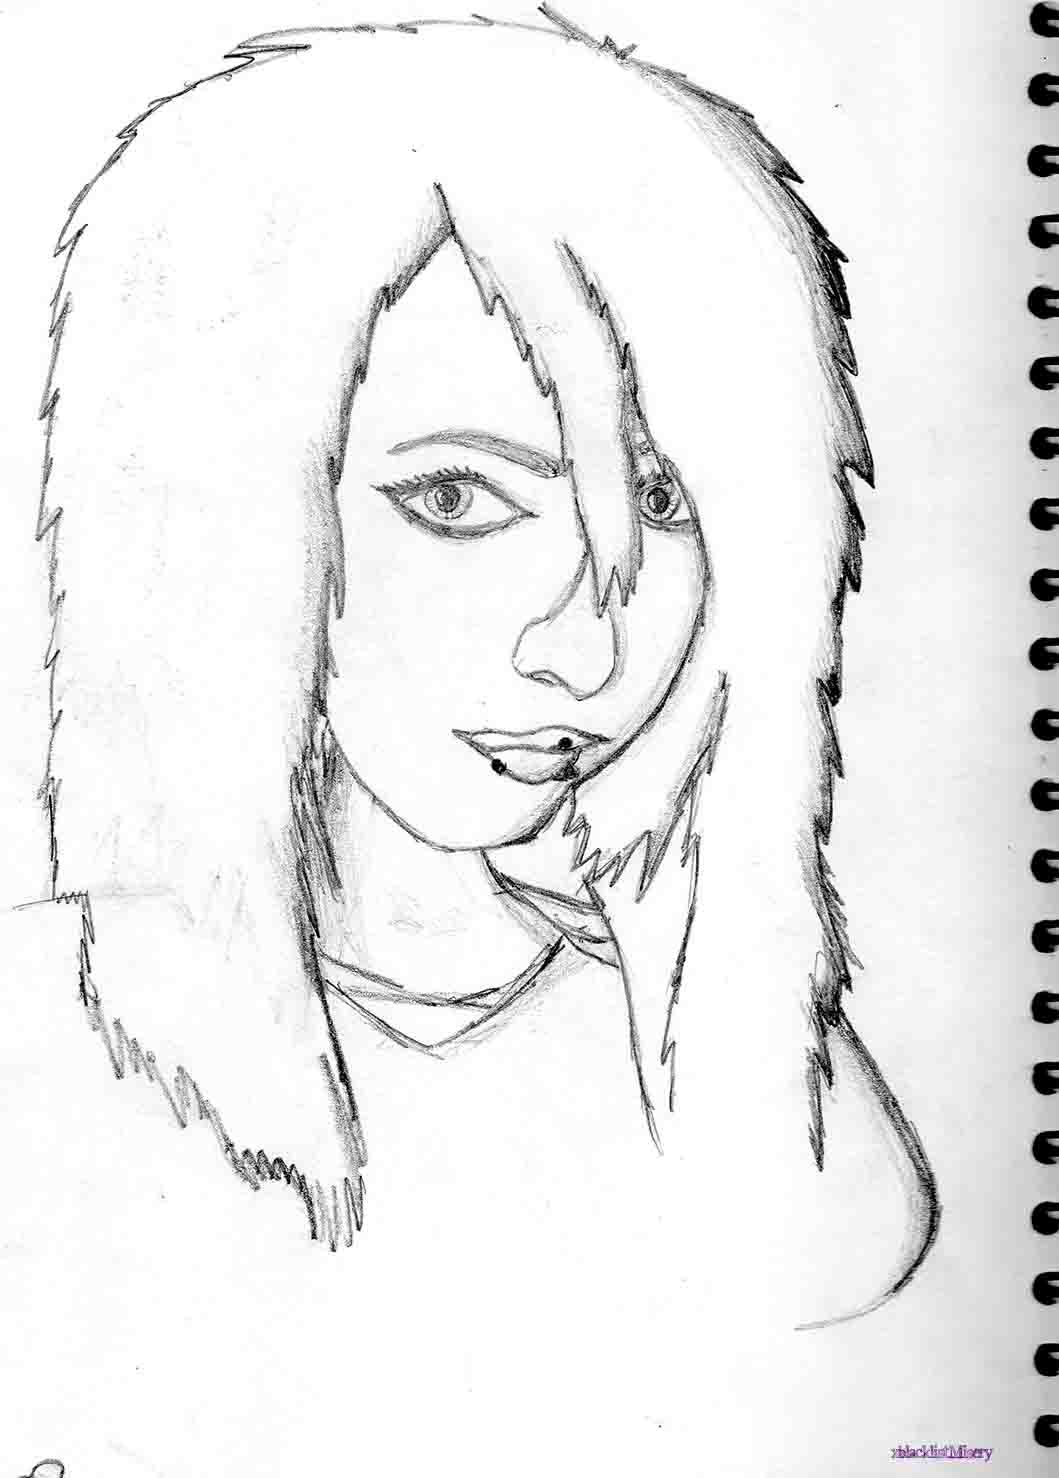 Cute girl drawing 7 by xblacklistmisery on deviantart for Cute drawings for a girlfriend